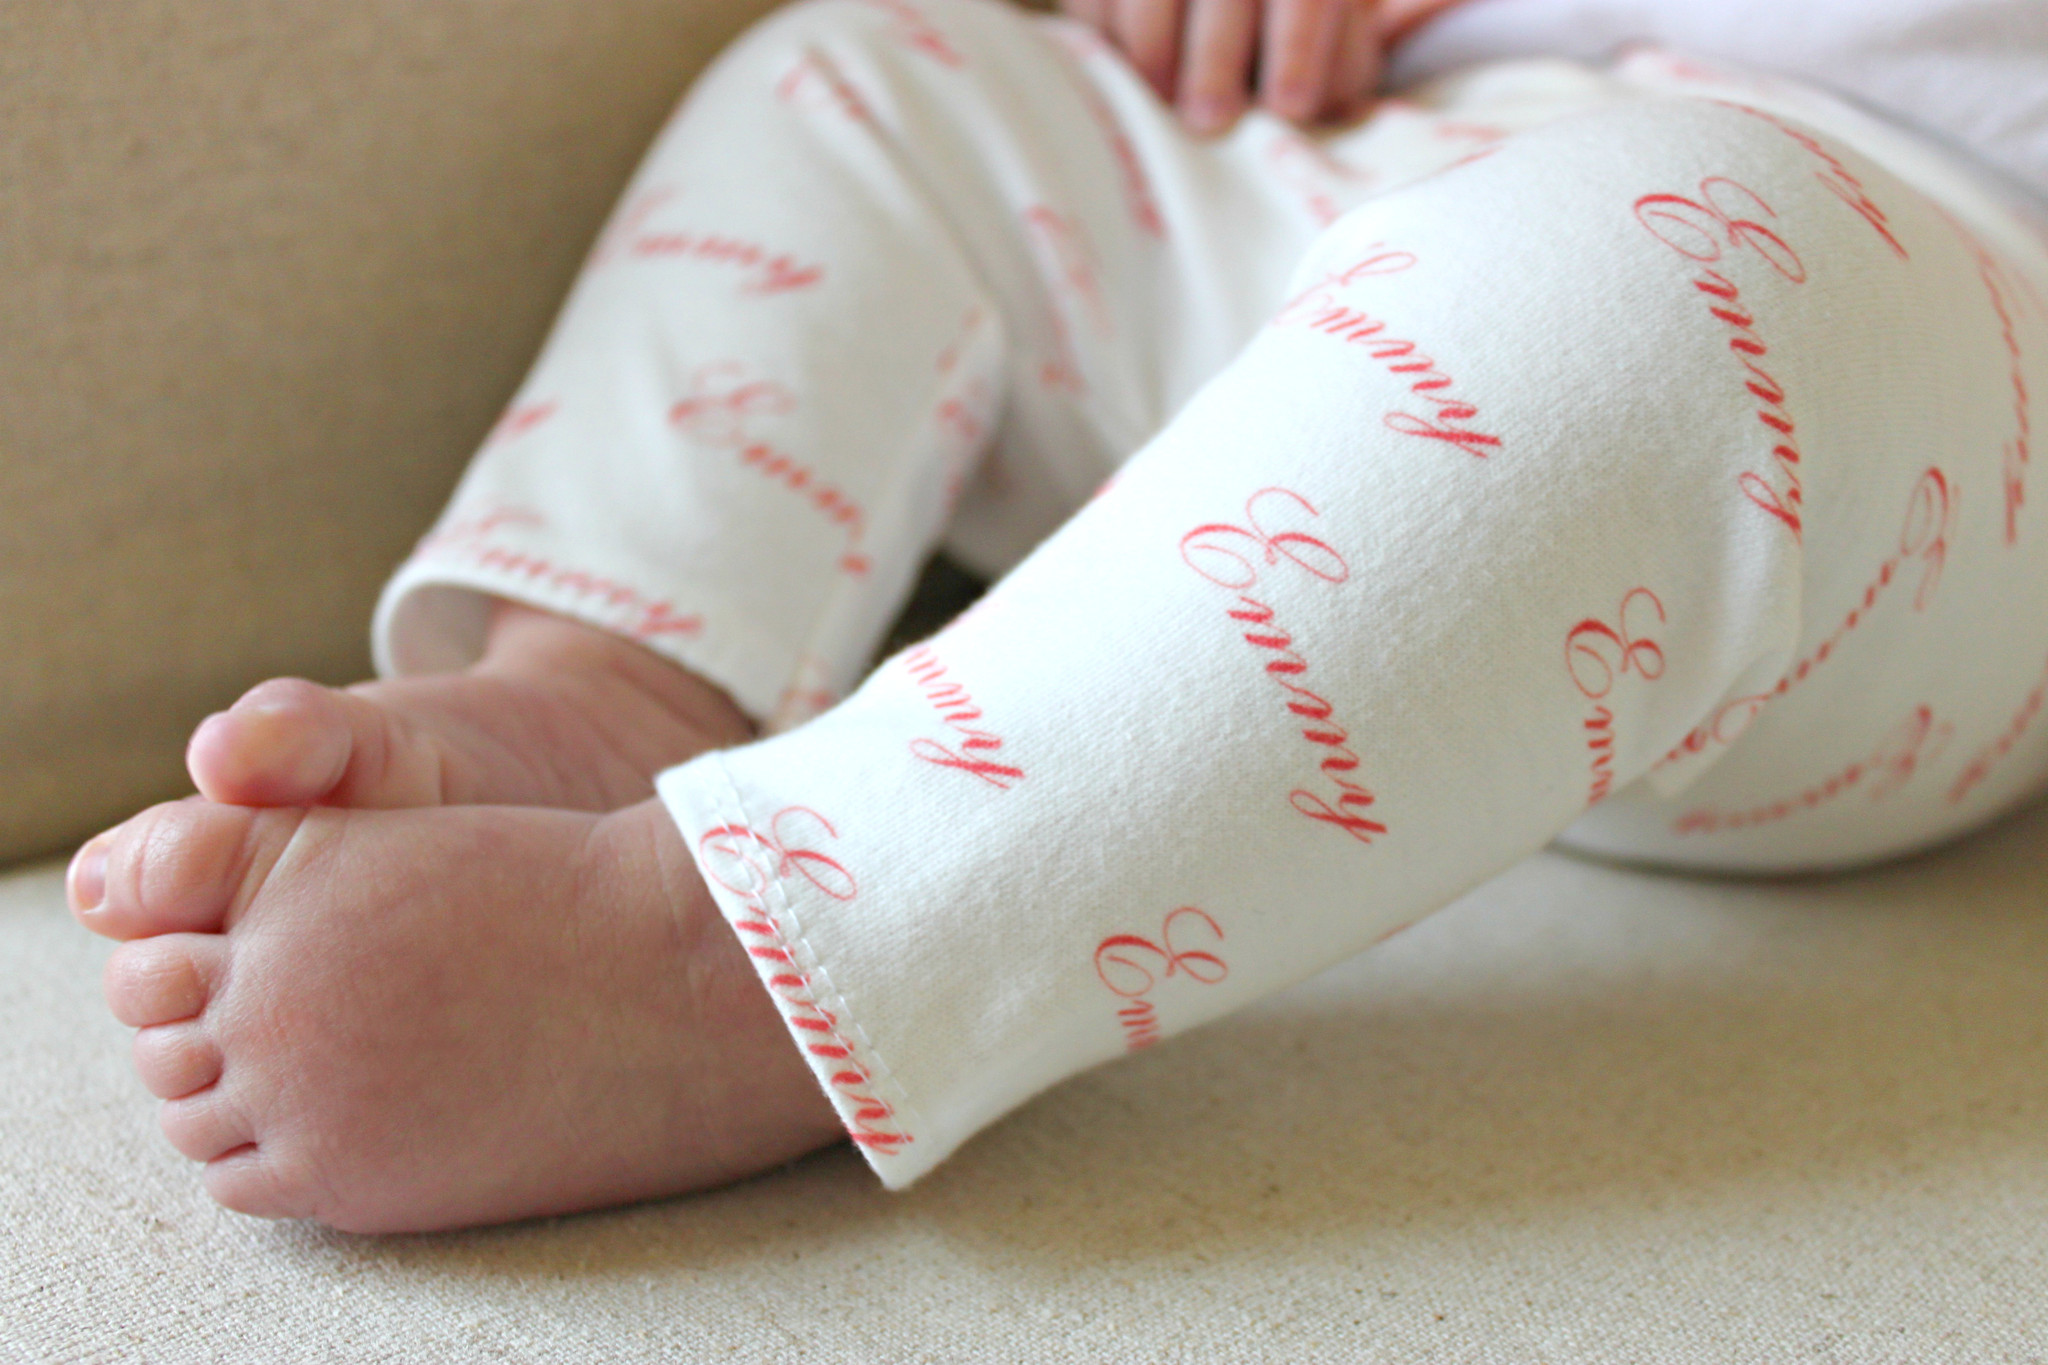 Nifty Personalized Baby Leggings Beyond Personalized Baby Gifts Project Nursery Personalized Baby Gifts Quick Shipping Personalized Baby Gifts gifts Personalized Baby Gifts